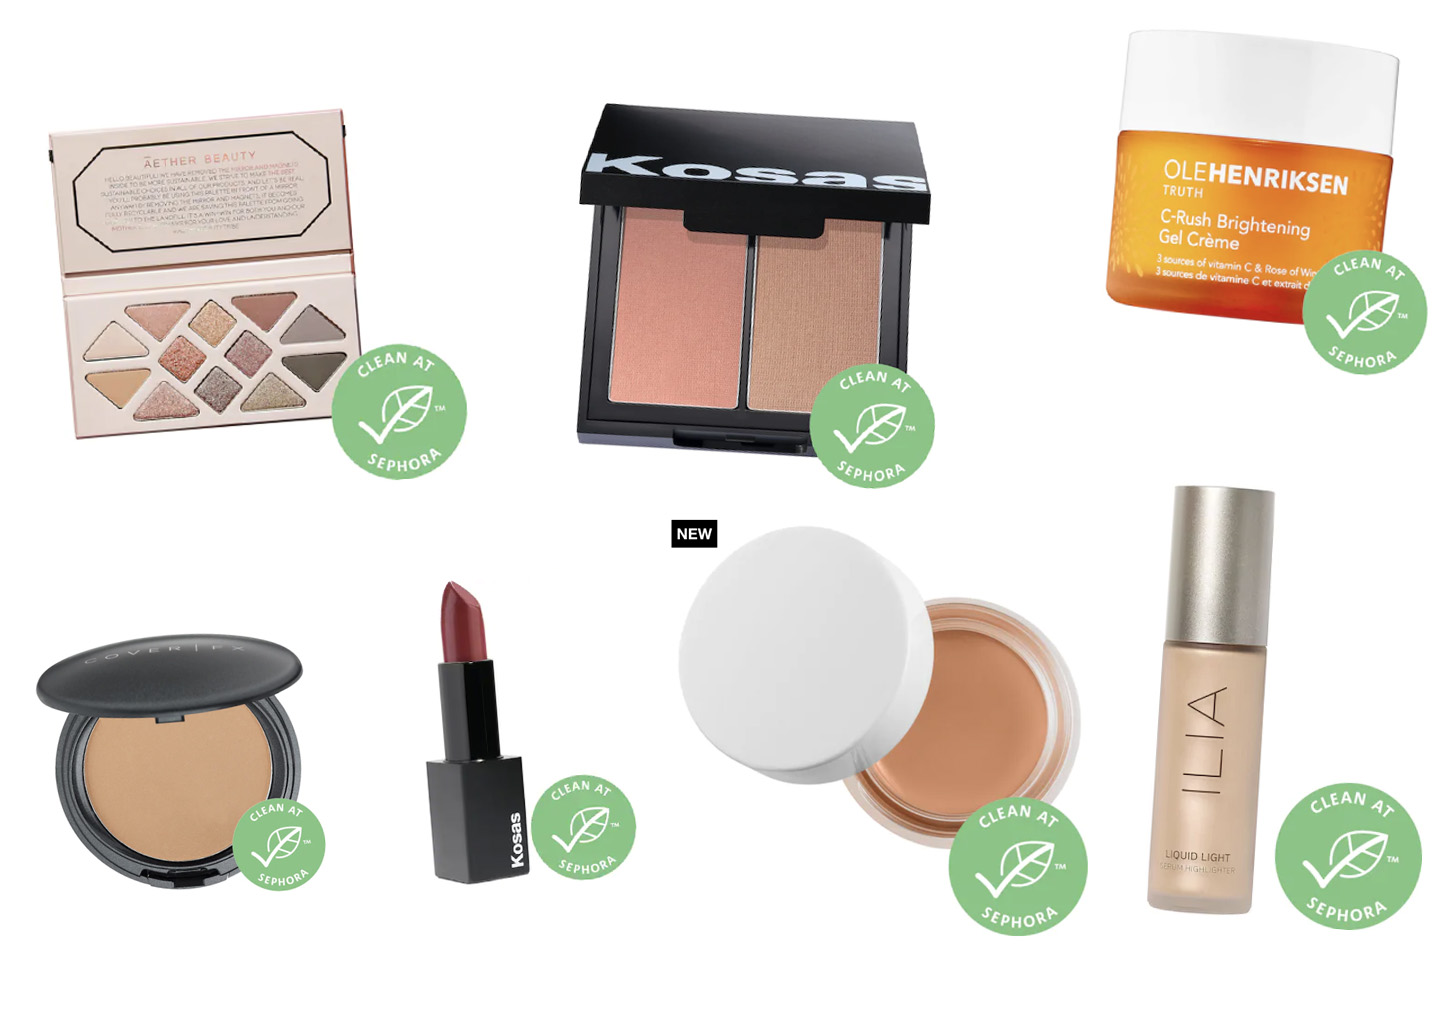 Sephora VIB Sale Recommendations 2019 | Clean Beauty Edition